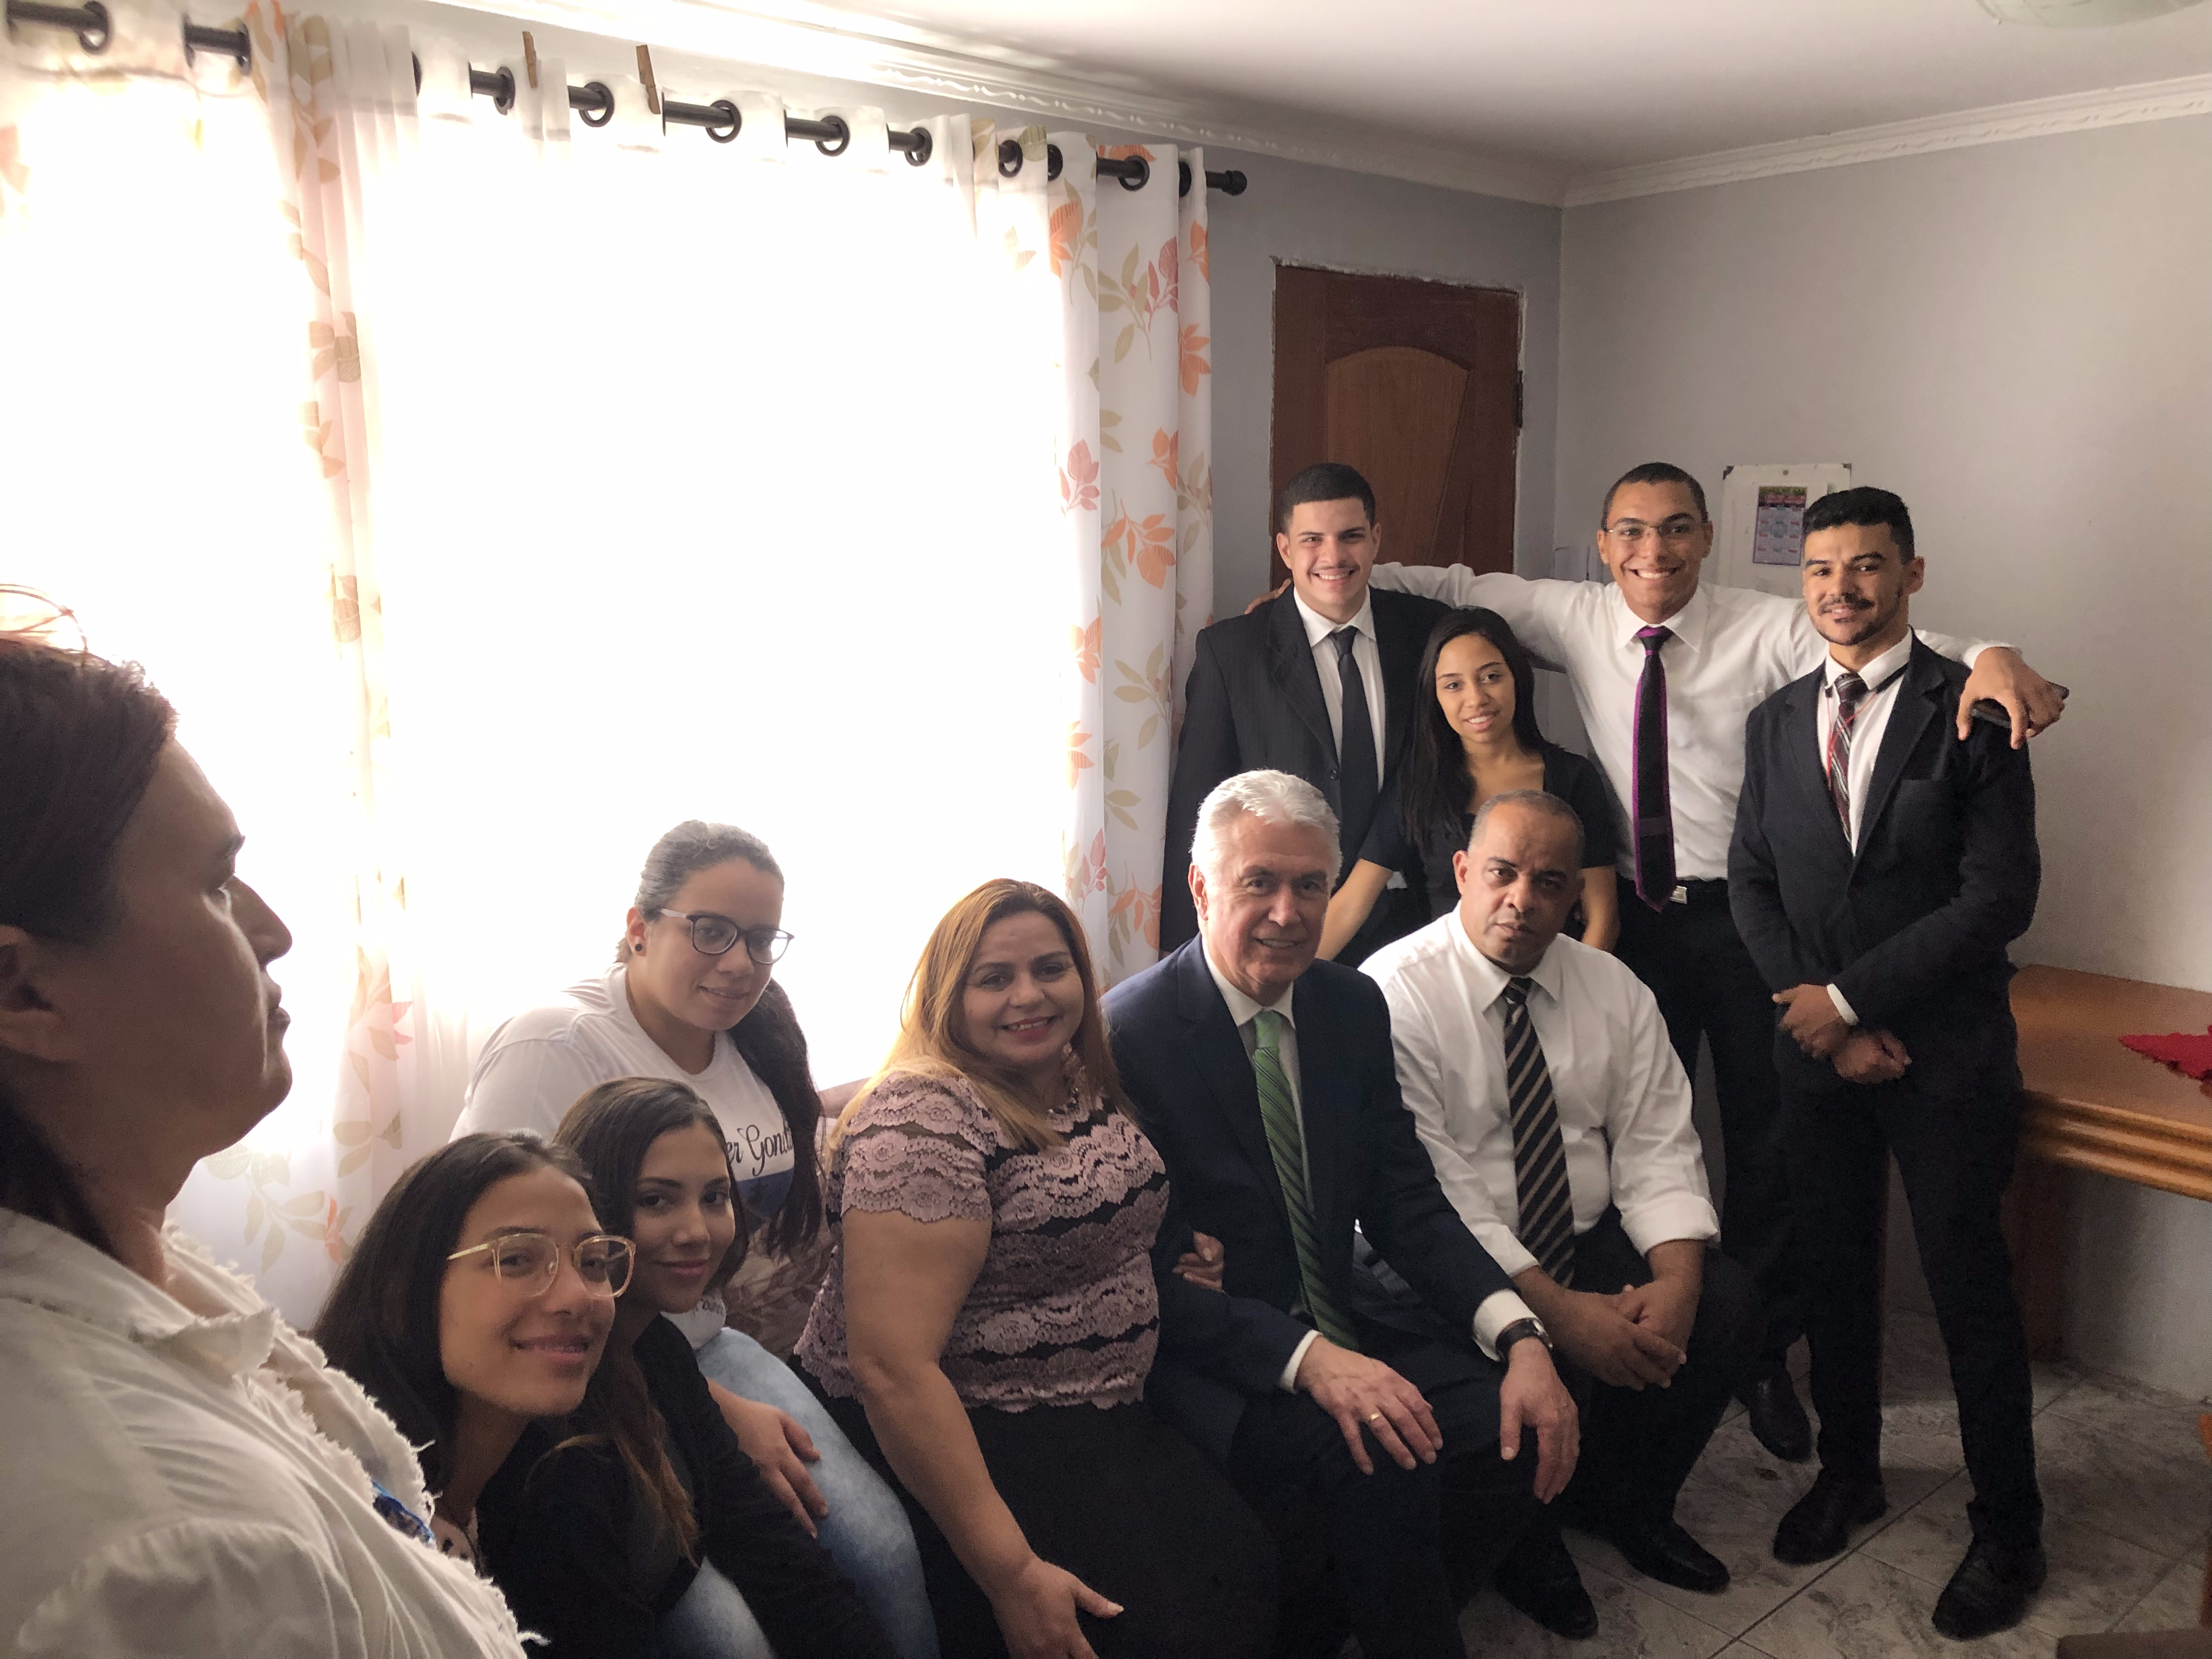 Family and friends of Elder Joao Gondim gather with Elder Dieter F. Uchtdorf of the Quorum of the Twelve Apostles in the Gondim home on Feb. 17, 2019. Elder Gondim passed away Jan. 28 while serving in the Portugal Lisbon Mission.